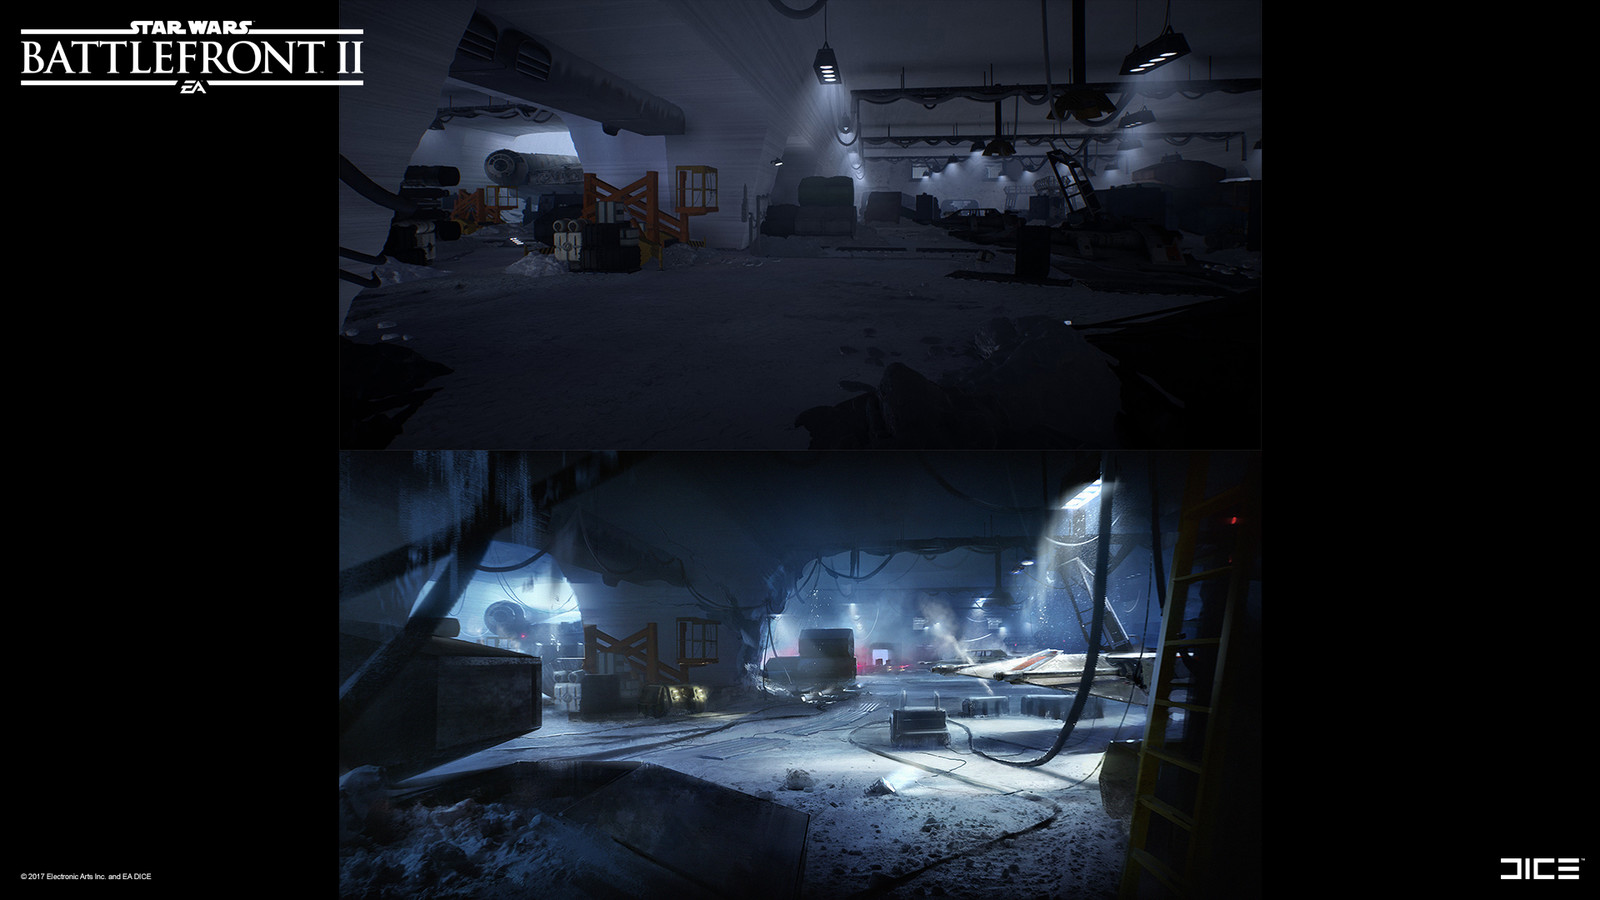 Lighting paintover - Hoth. Collaboration with Sigurd Fernström.